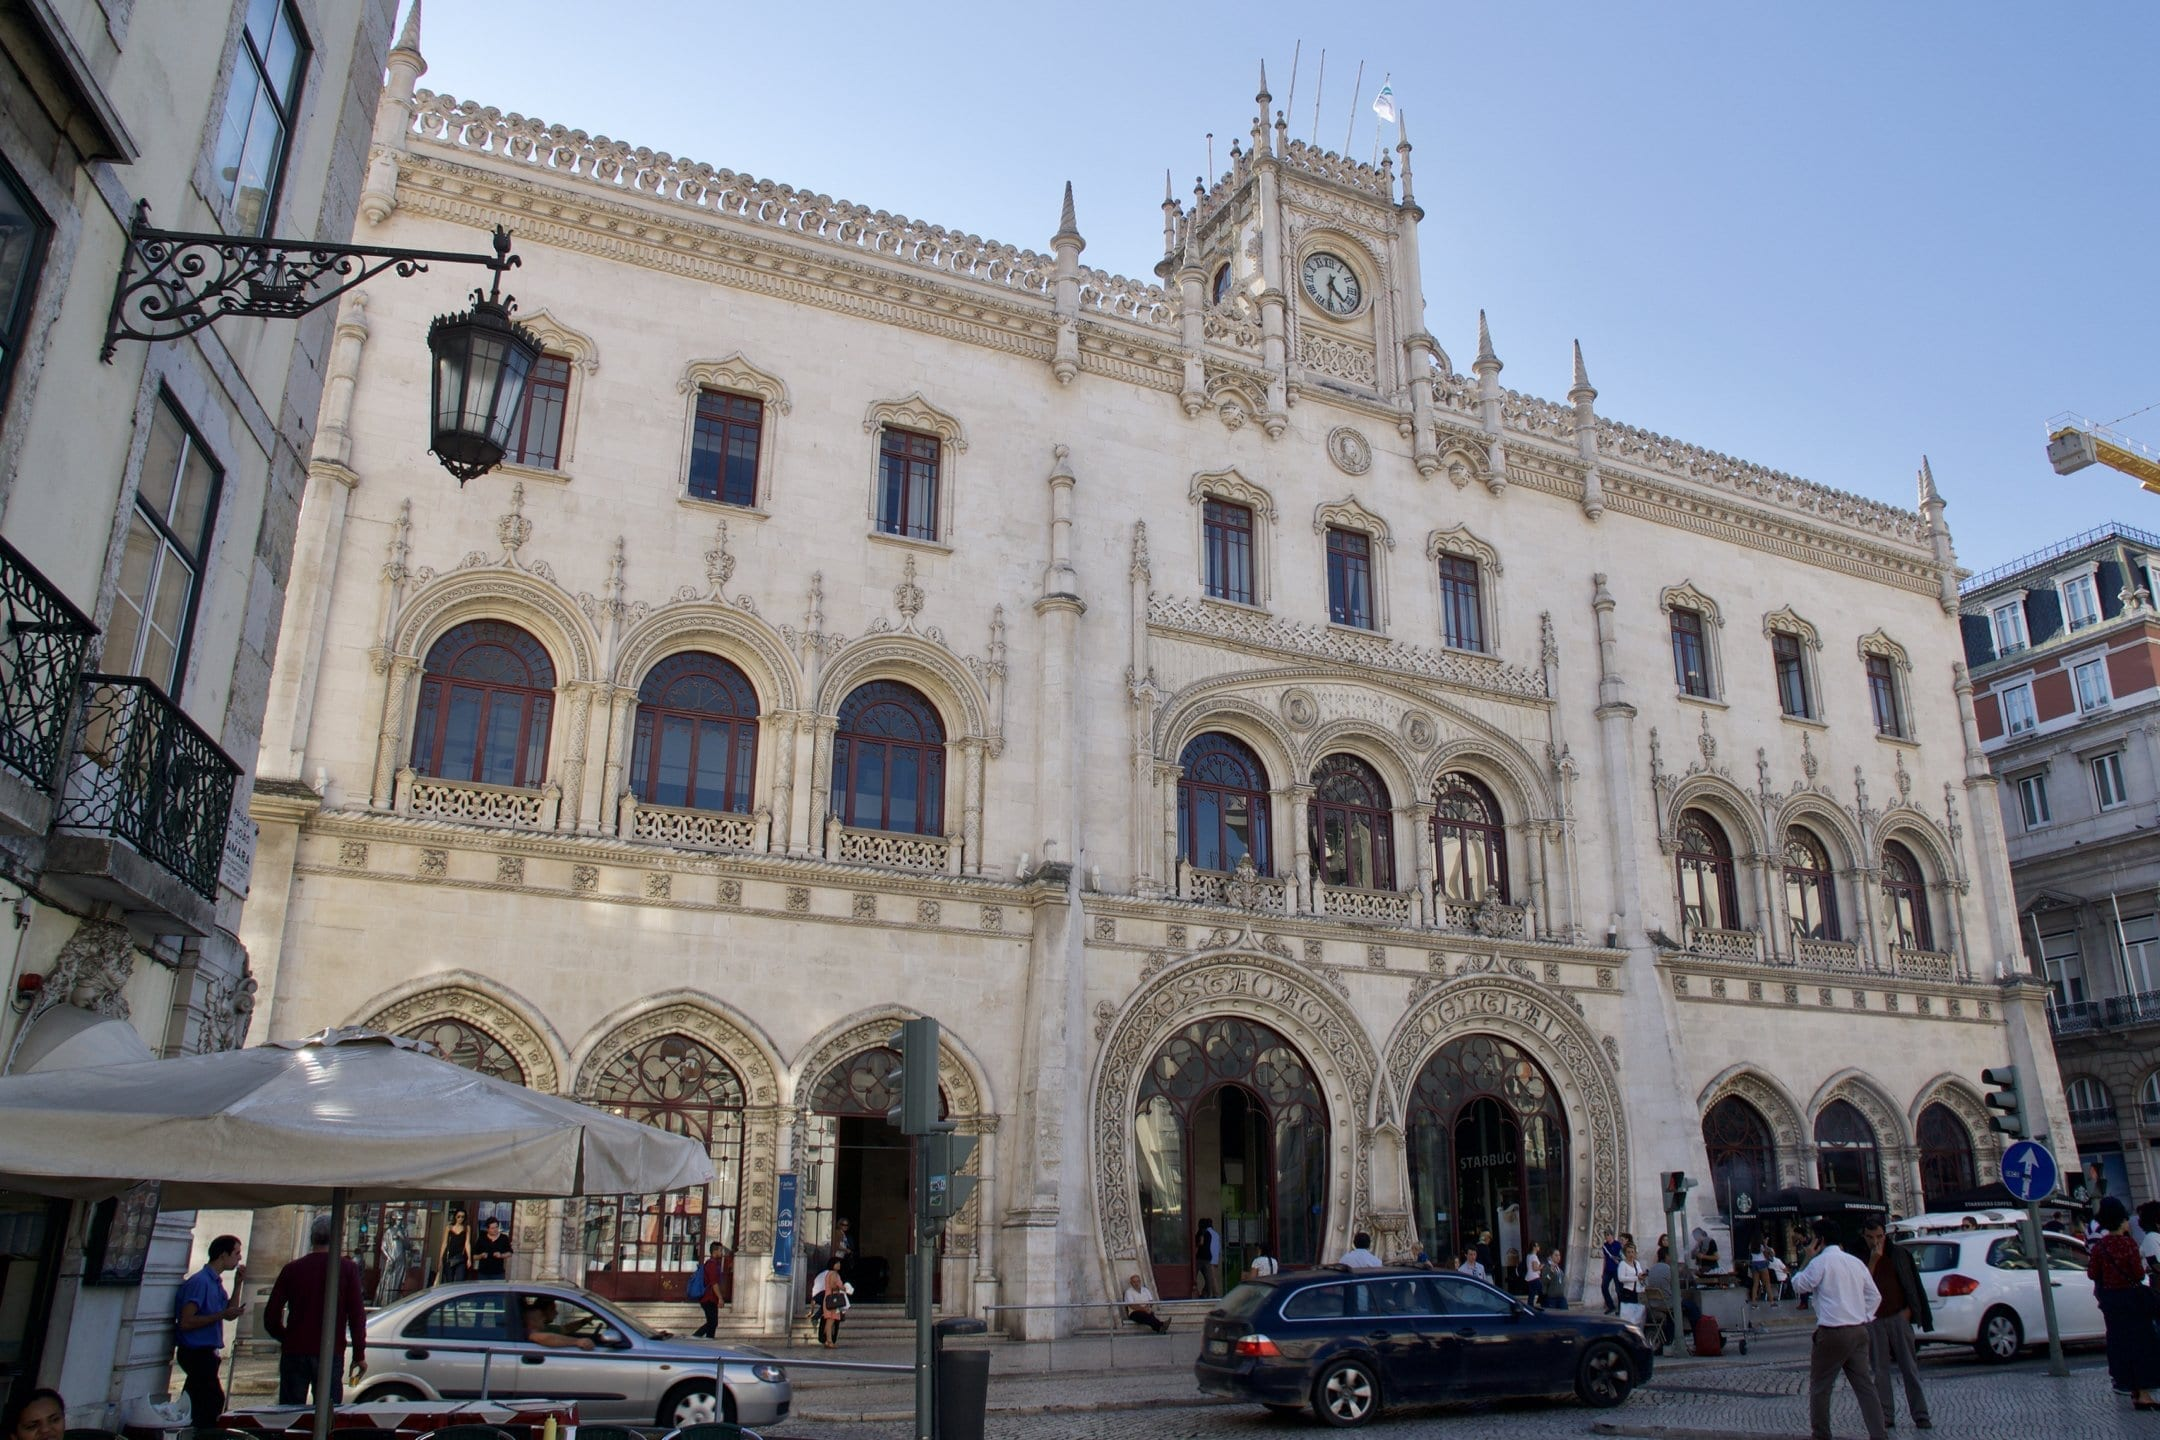 The beautiful Rossio station in Lisbon